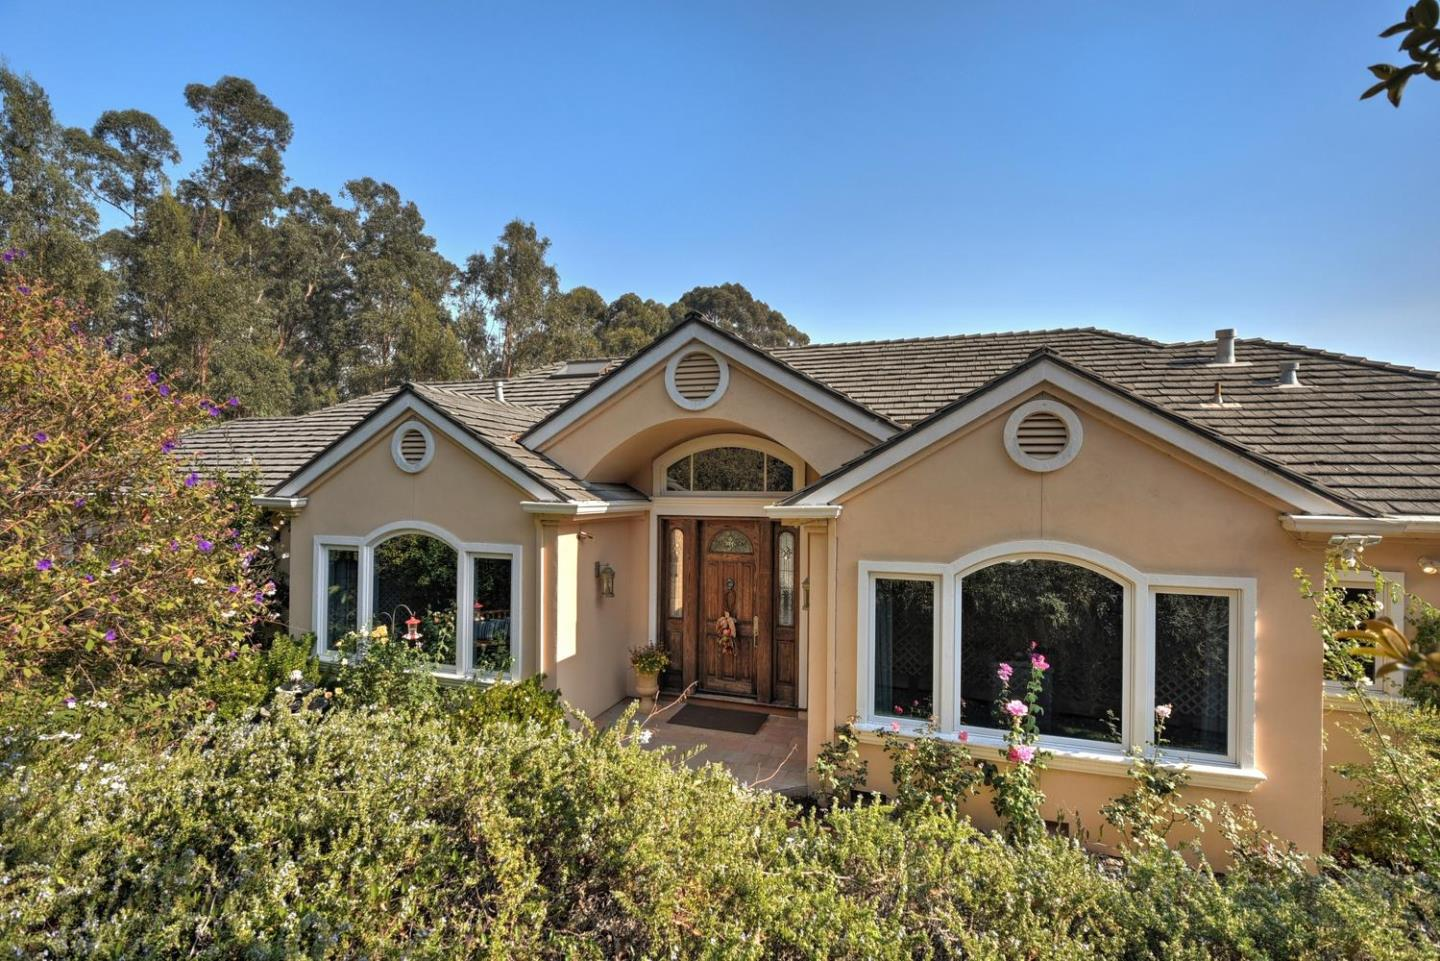 Single Family Home for Sale at 23 Alberta Glen 23 Alberta Glen Burlingame, California 94010 United States